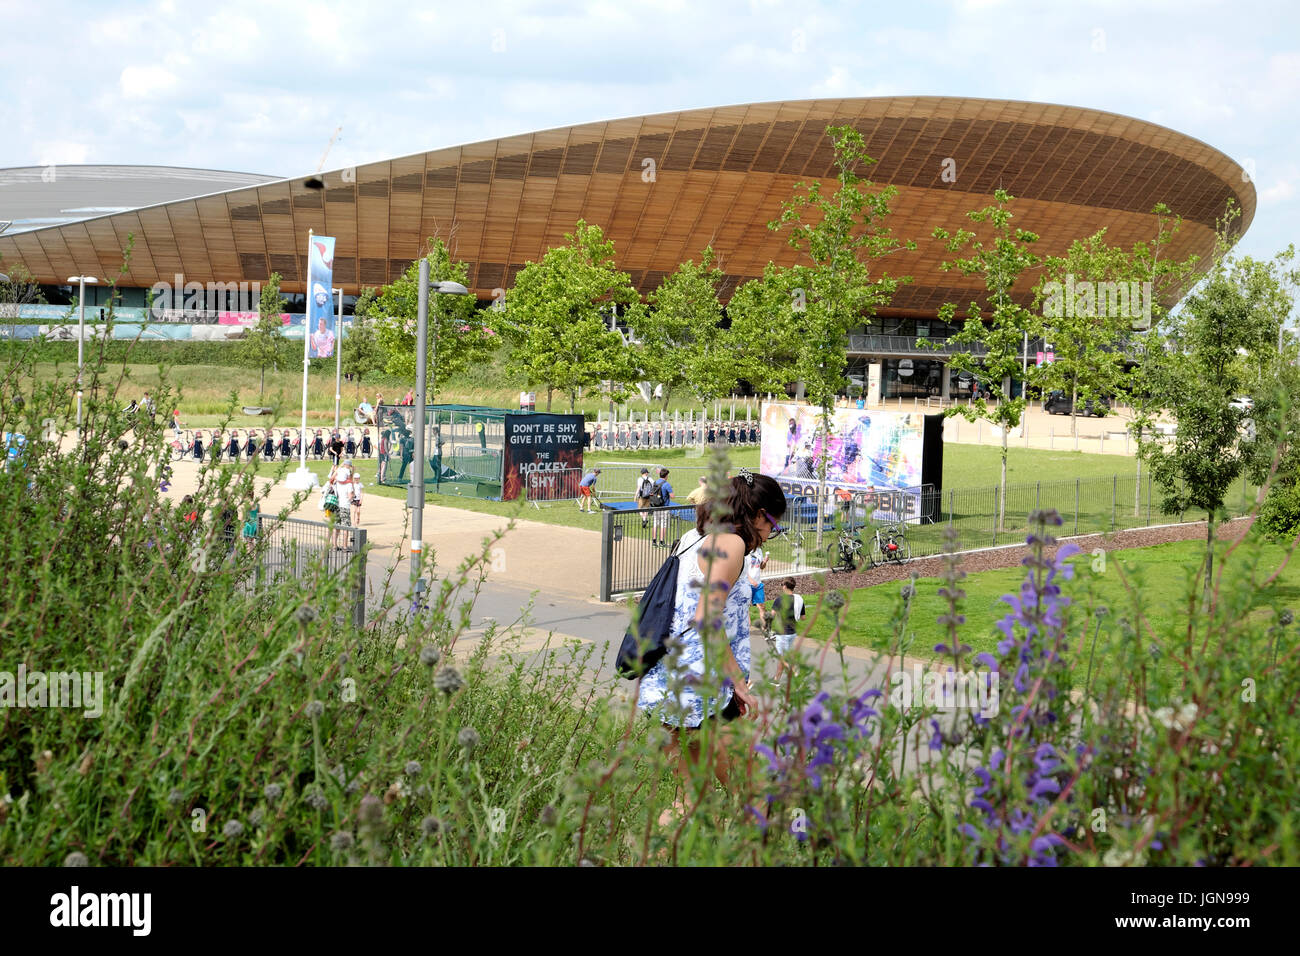 Wild flowers bloom in June garden near the Queen Elizabeth Olympic Park Velodrome in Stratford Borough of Newham - Stock Image